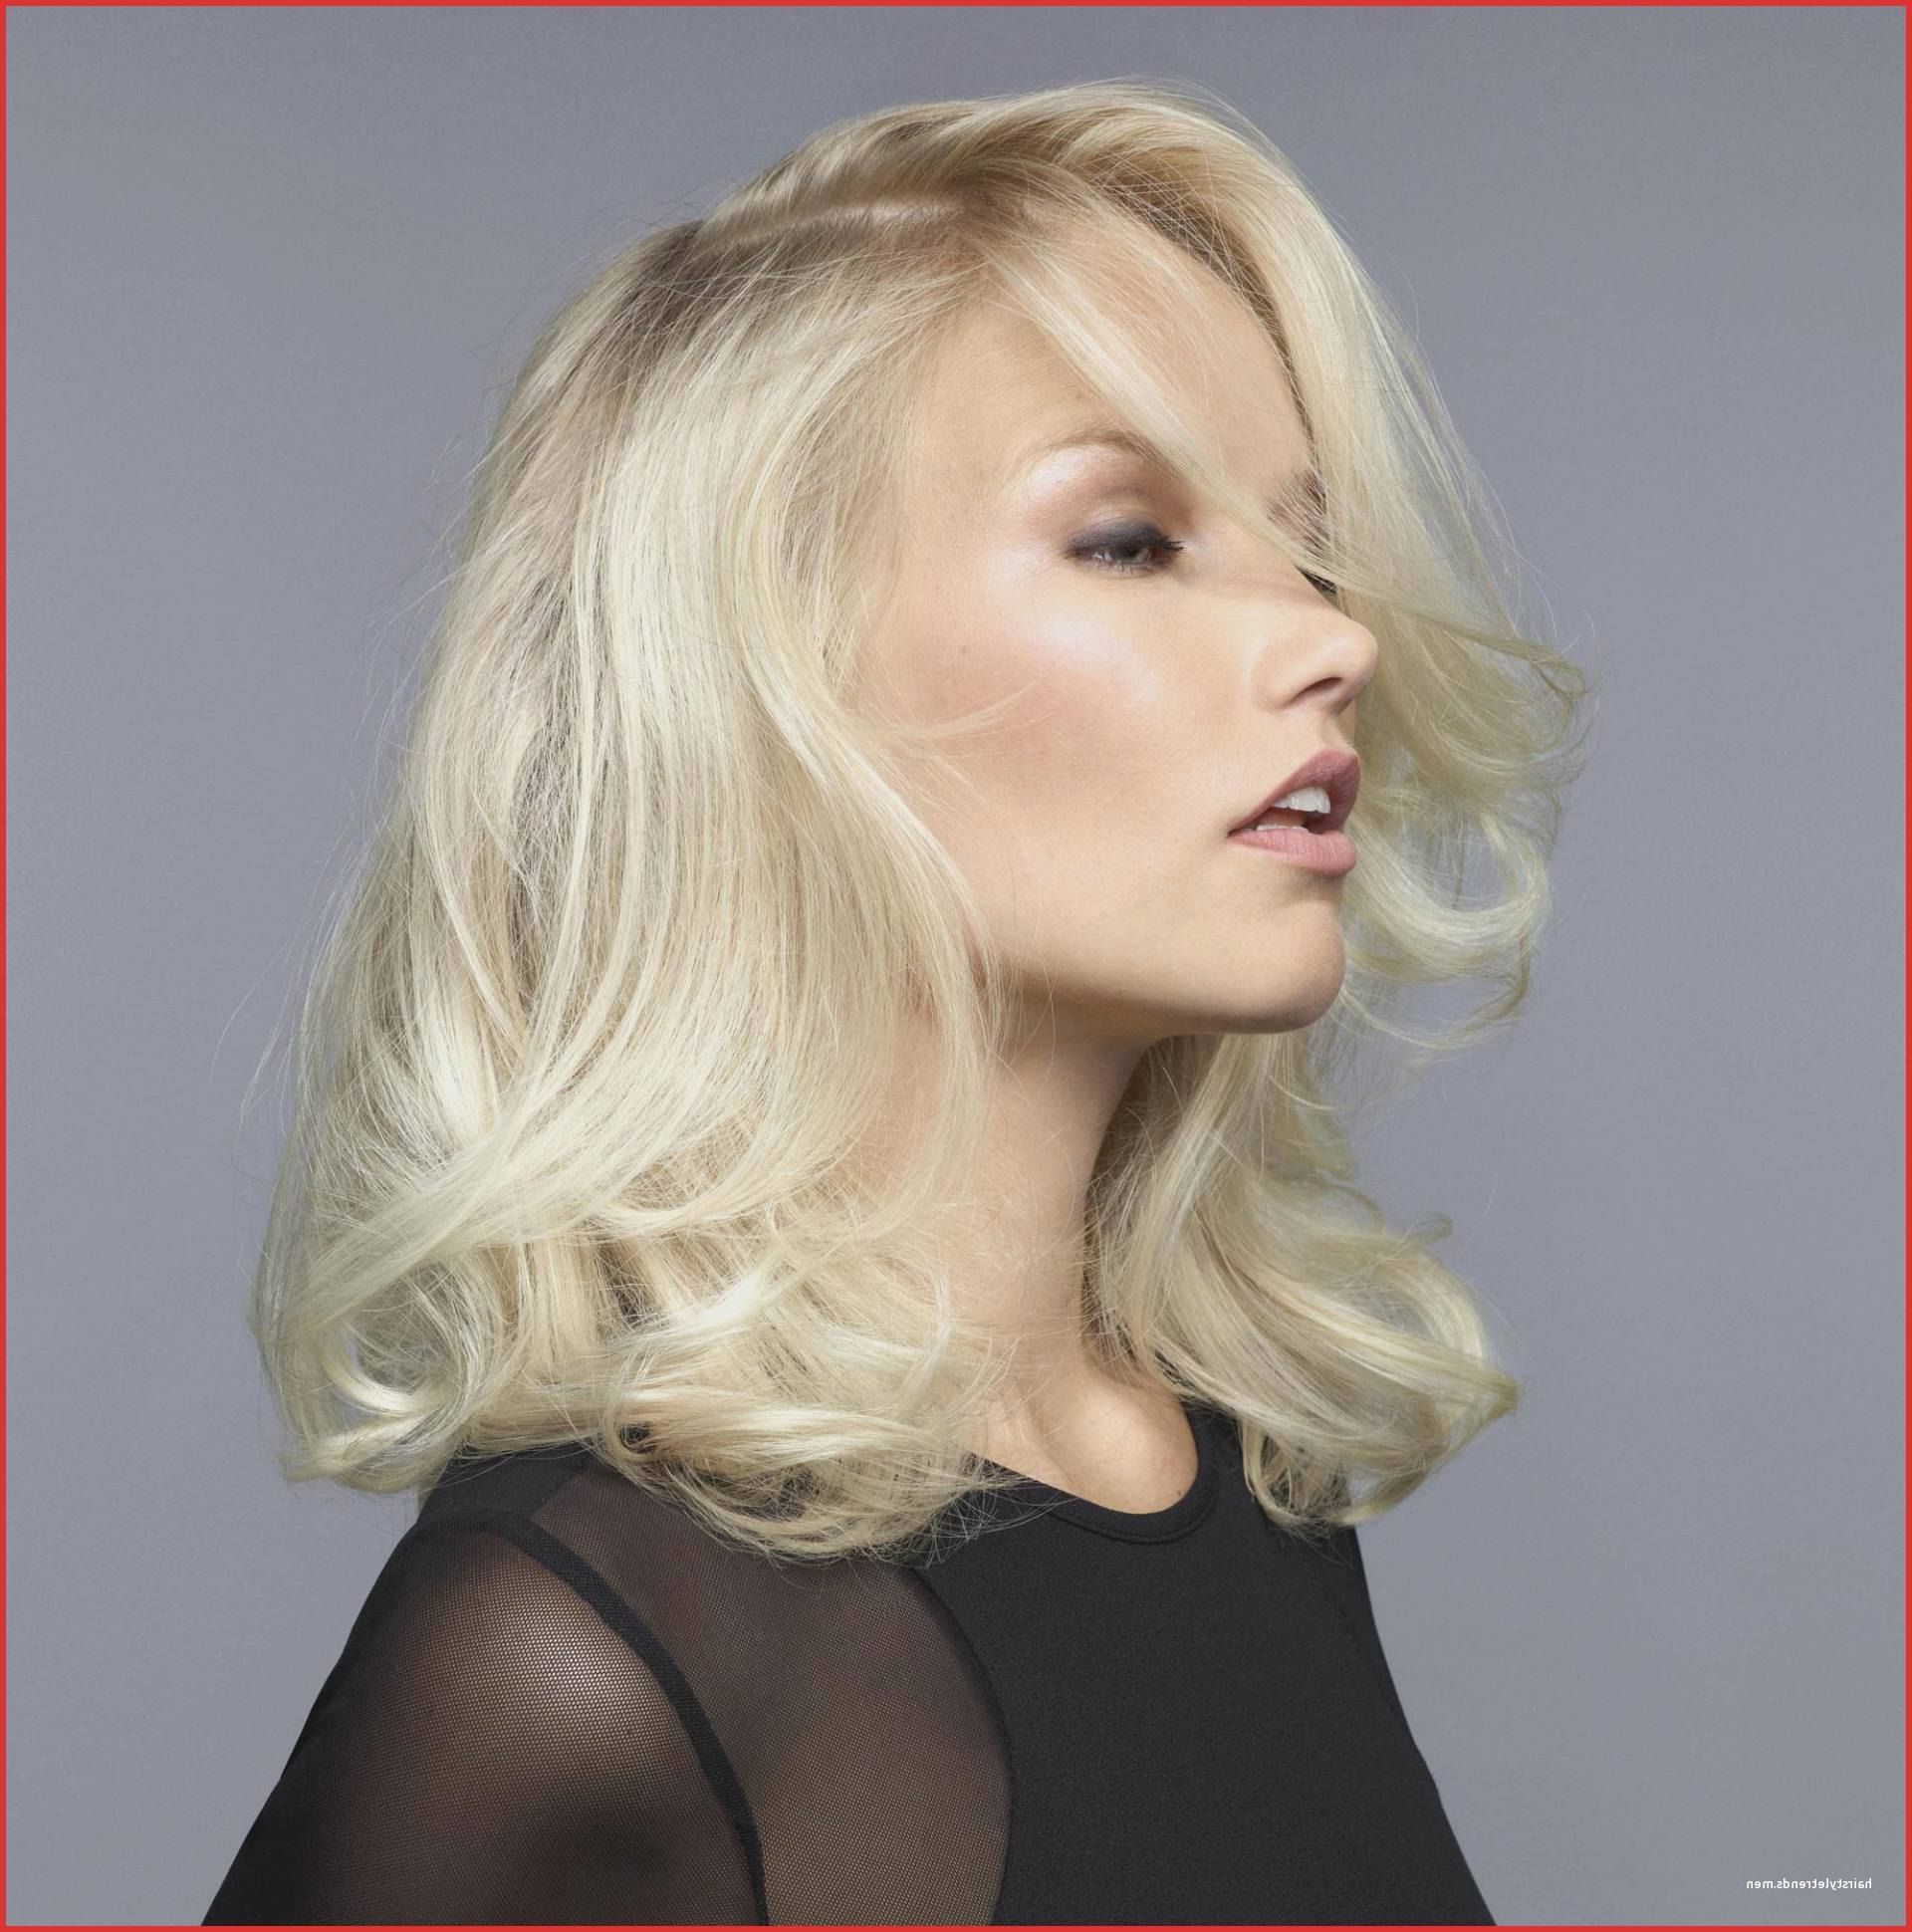 Most Current Medium Haircuts For Glasses Regarding 19 Medium Length Hairstyles For Over 50 With Glasses (View 13 of 20)